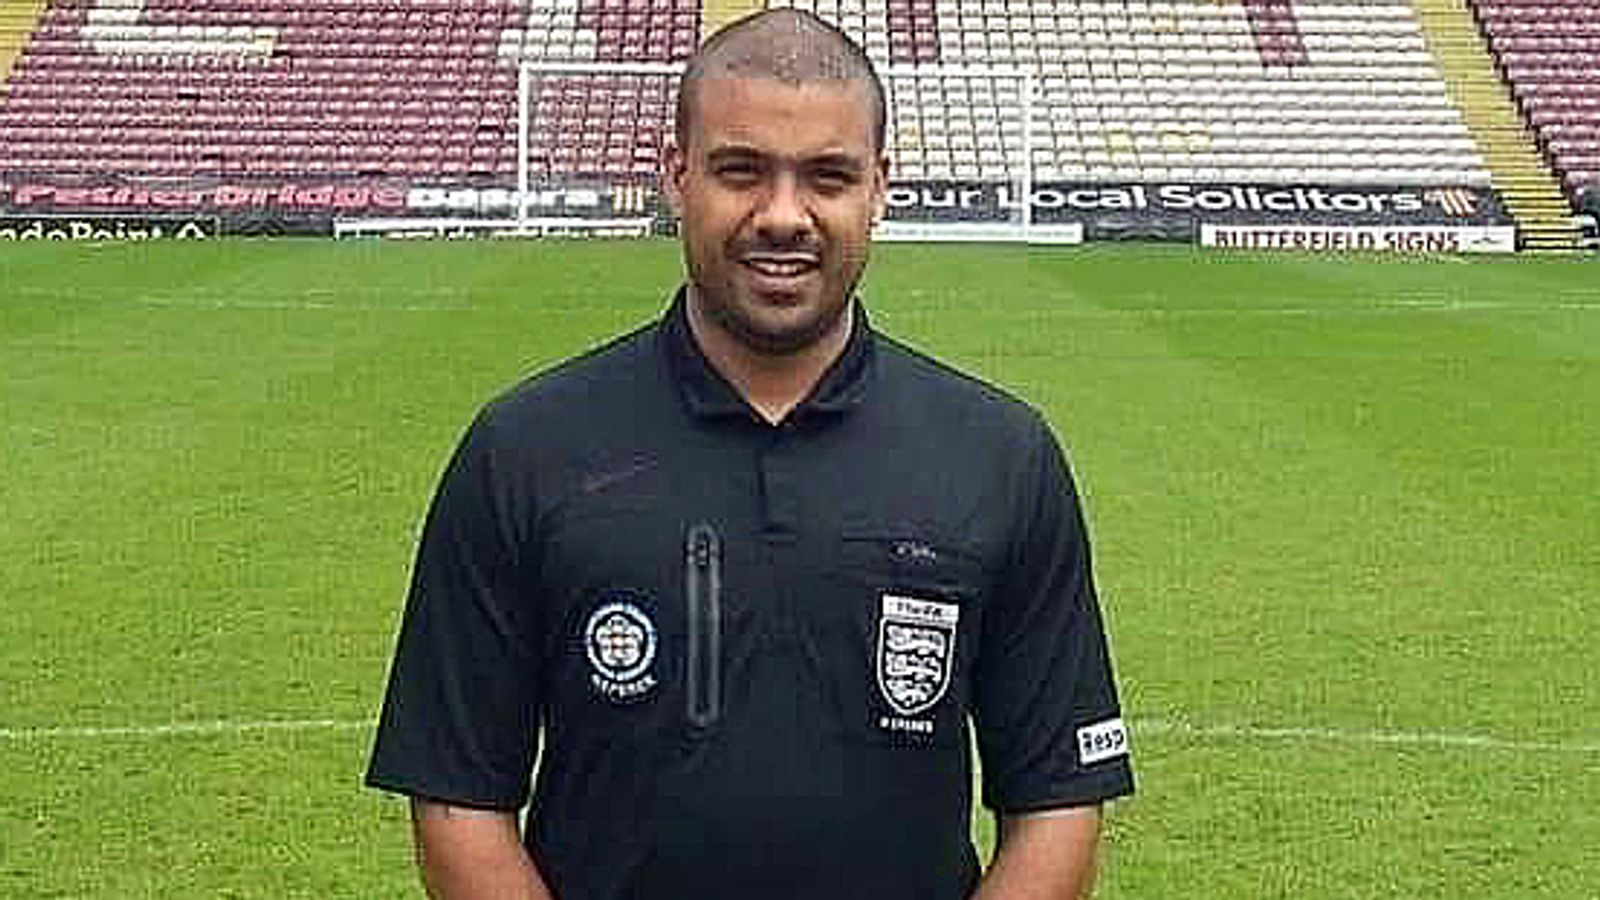 Amateur referee quits officiating in Sunday football after alleged racism and spitting incident